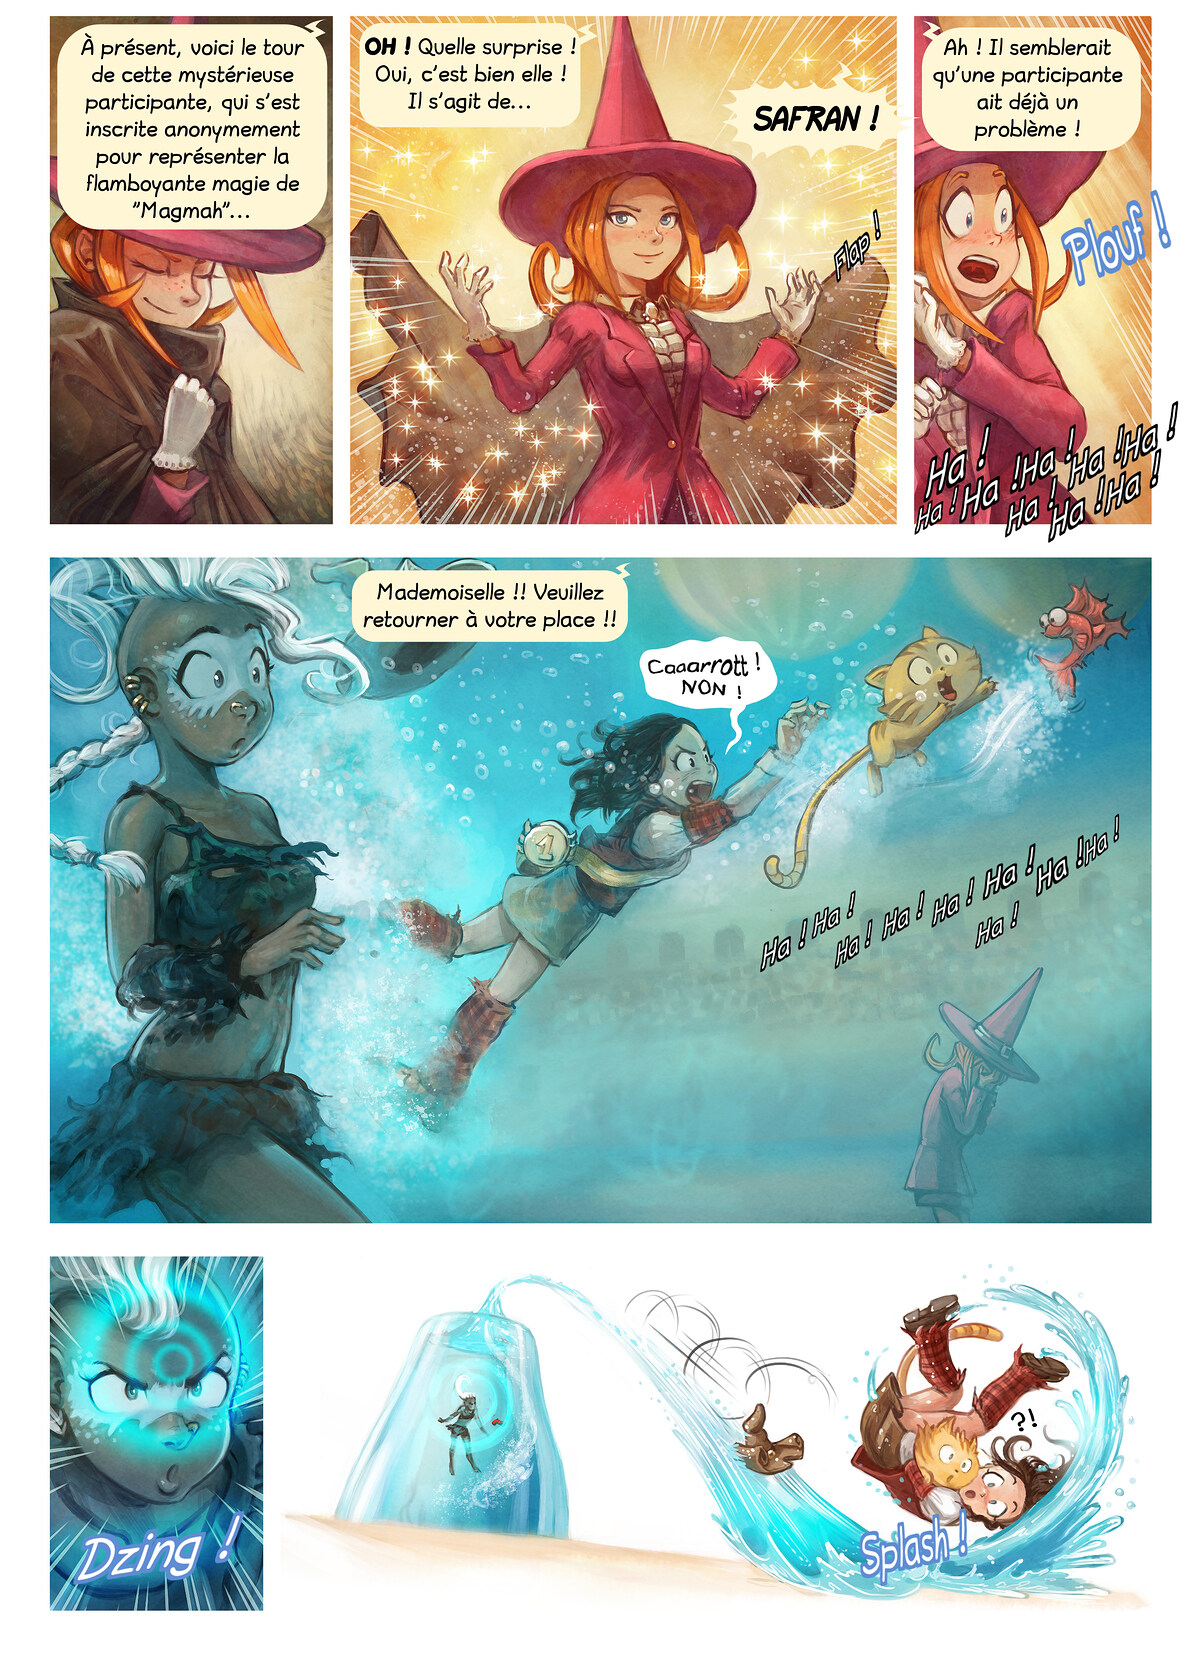 A webcomic page of Pepper&Carrot, épisode 21 [fr], page 6